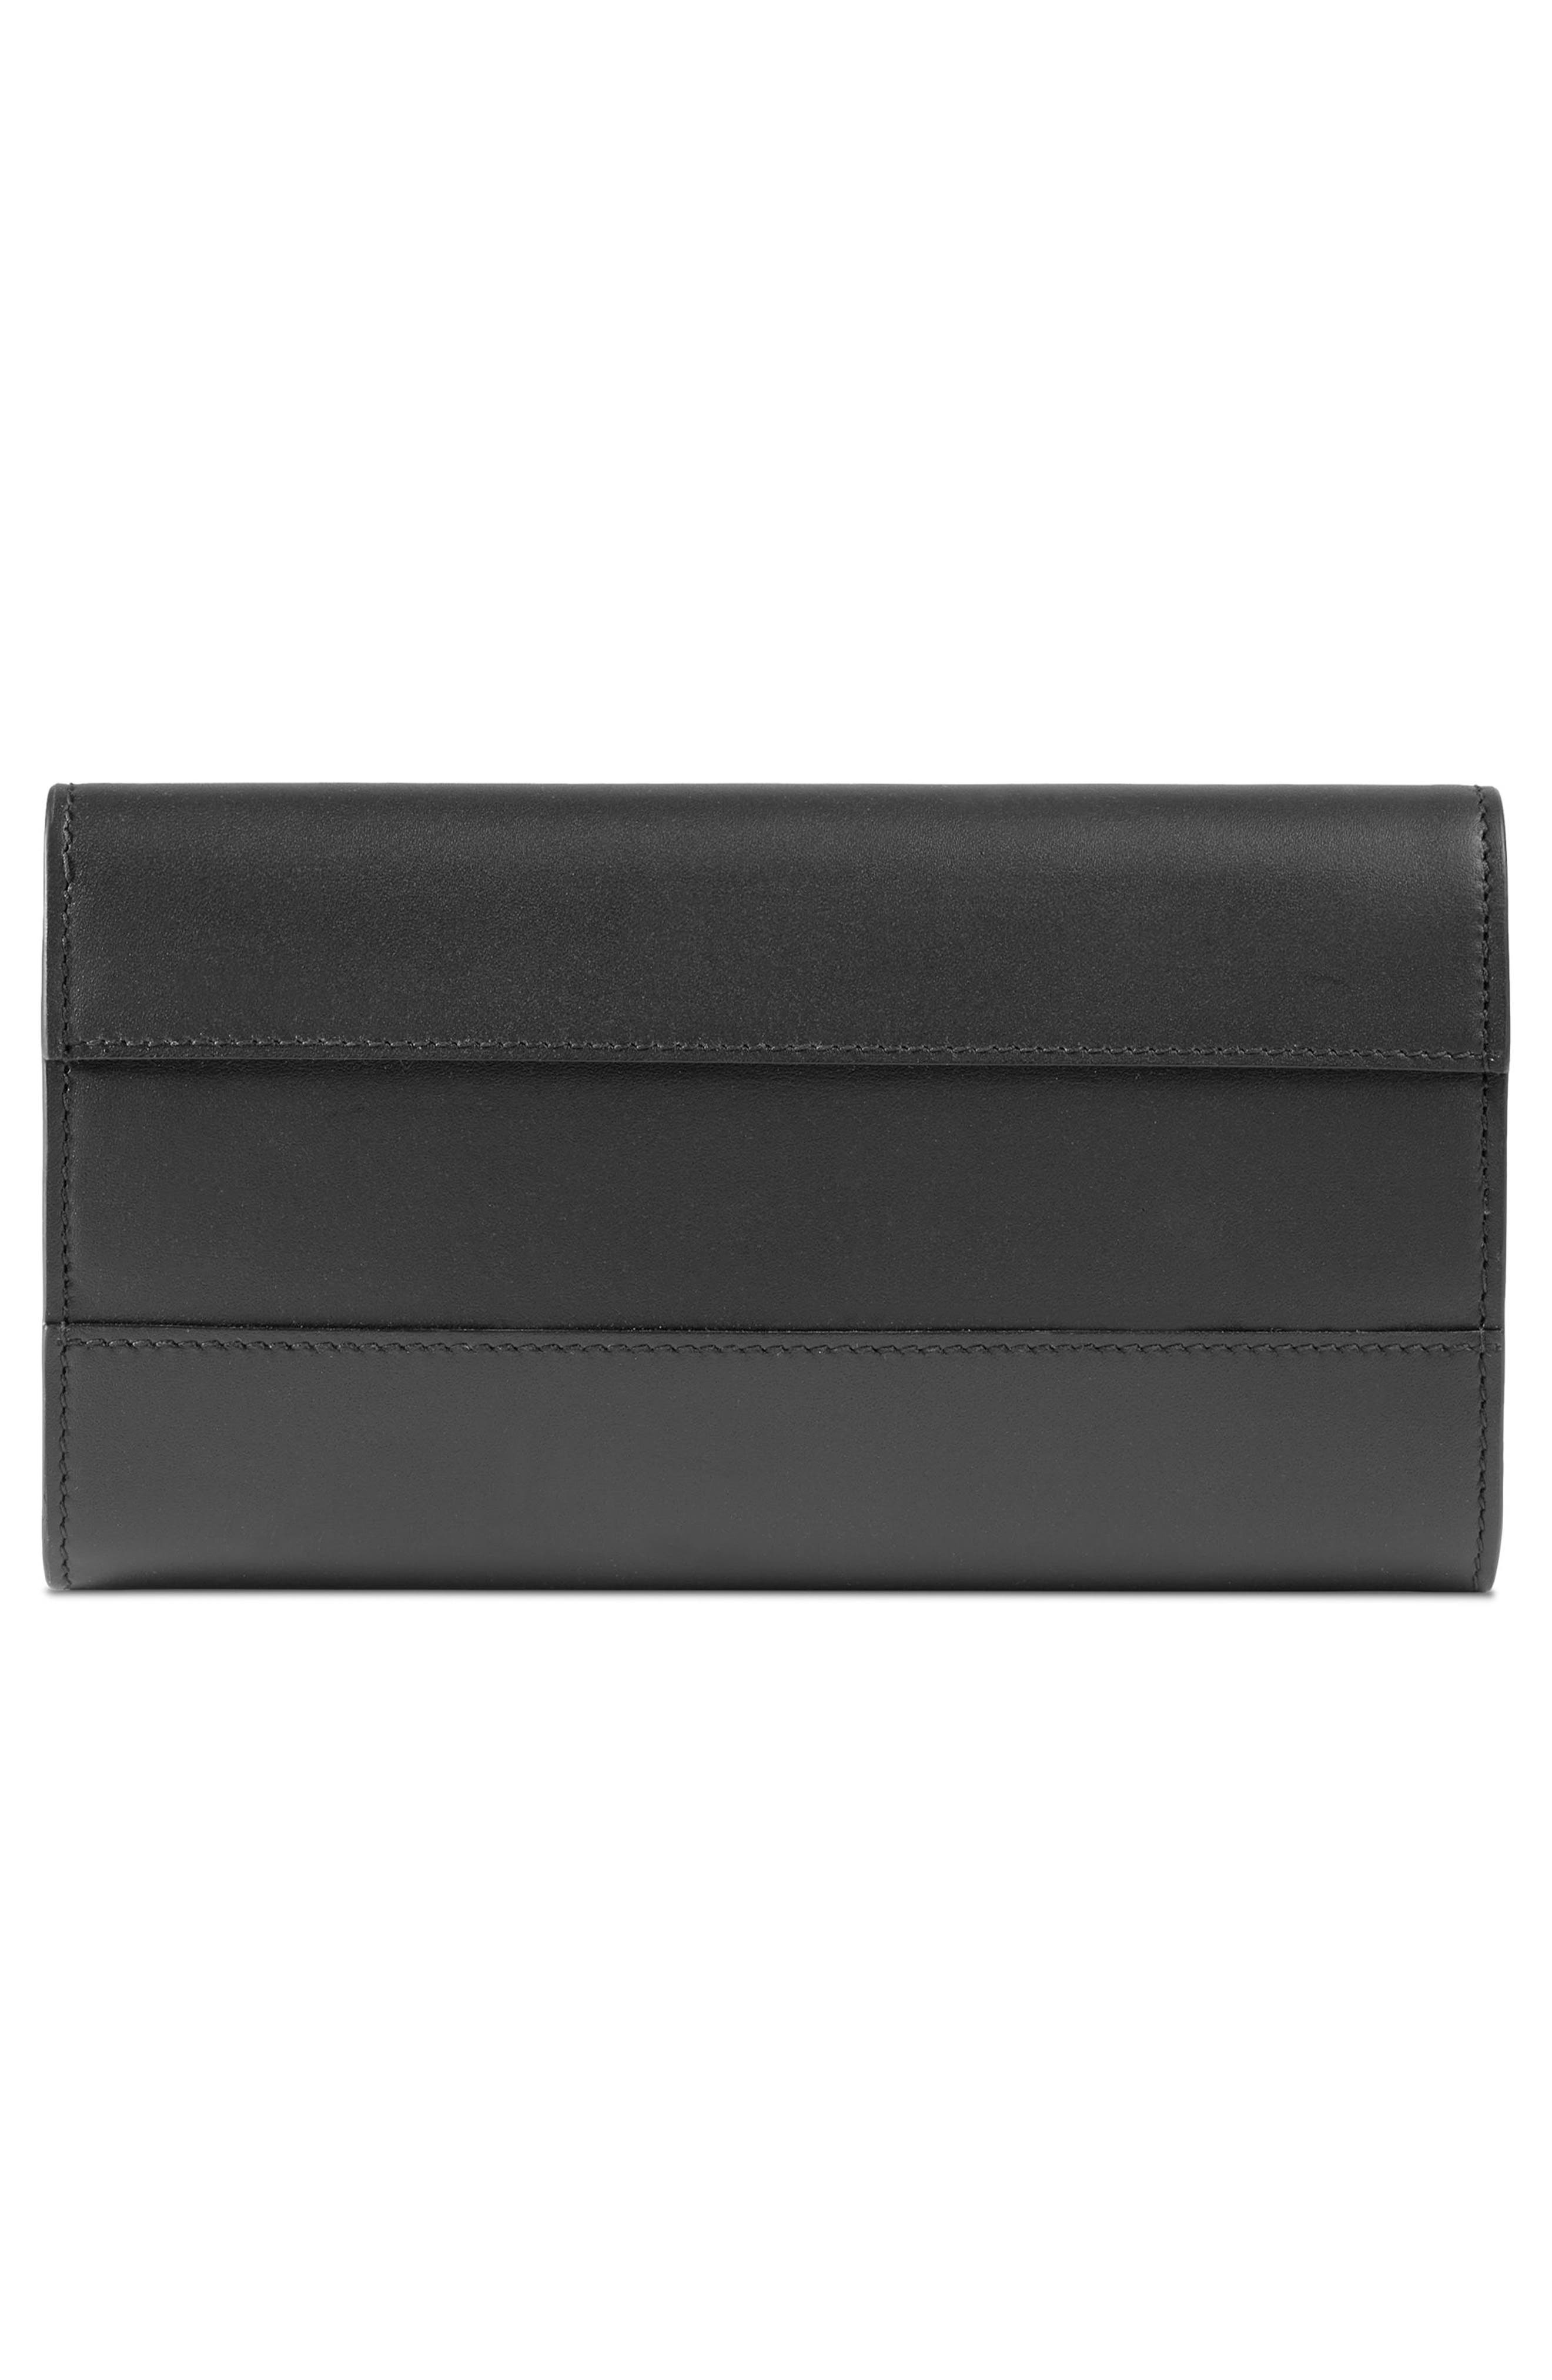 Queen Margaret Leather Flap Wallet,                             Alternate thumbnail 3, color,                             NERO/ NERO/ RUBY